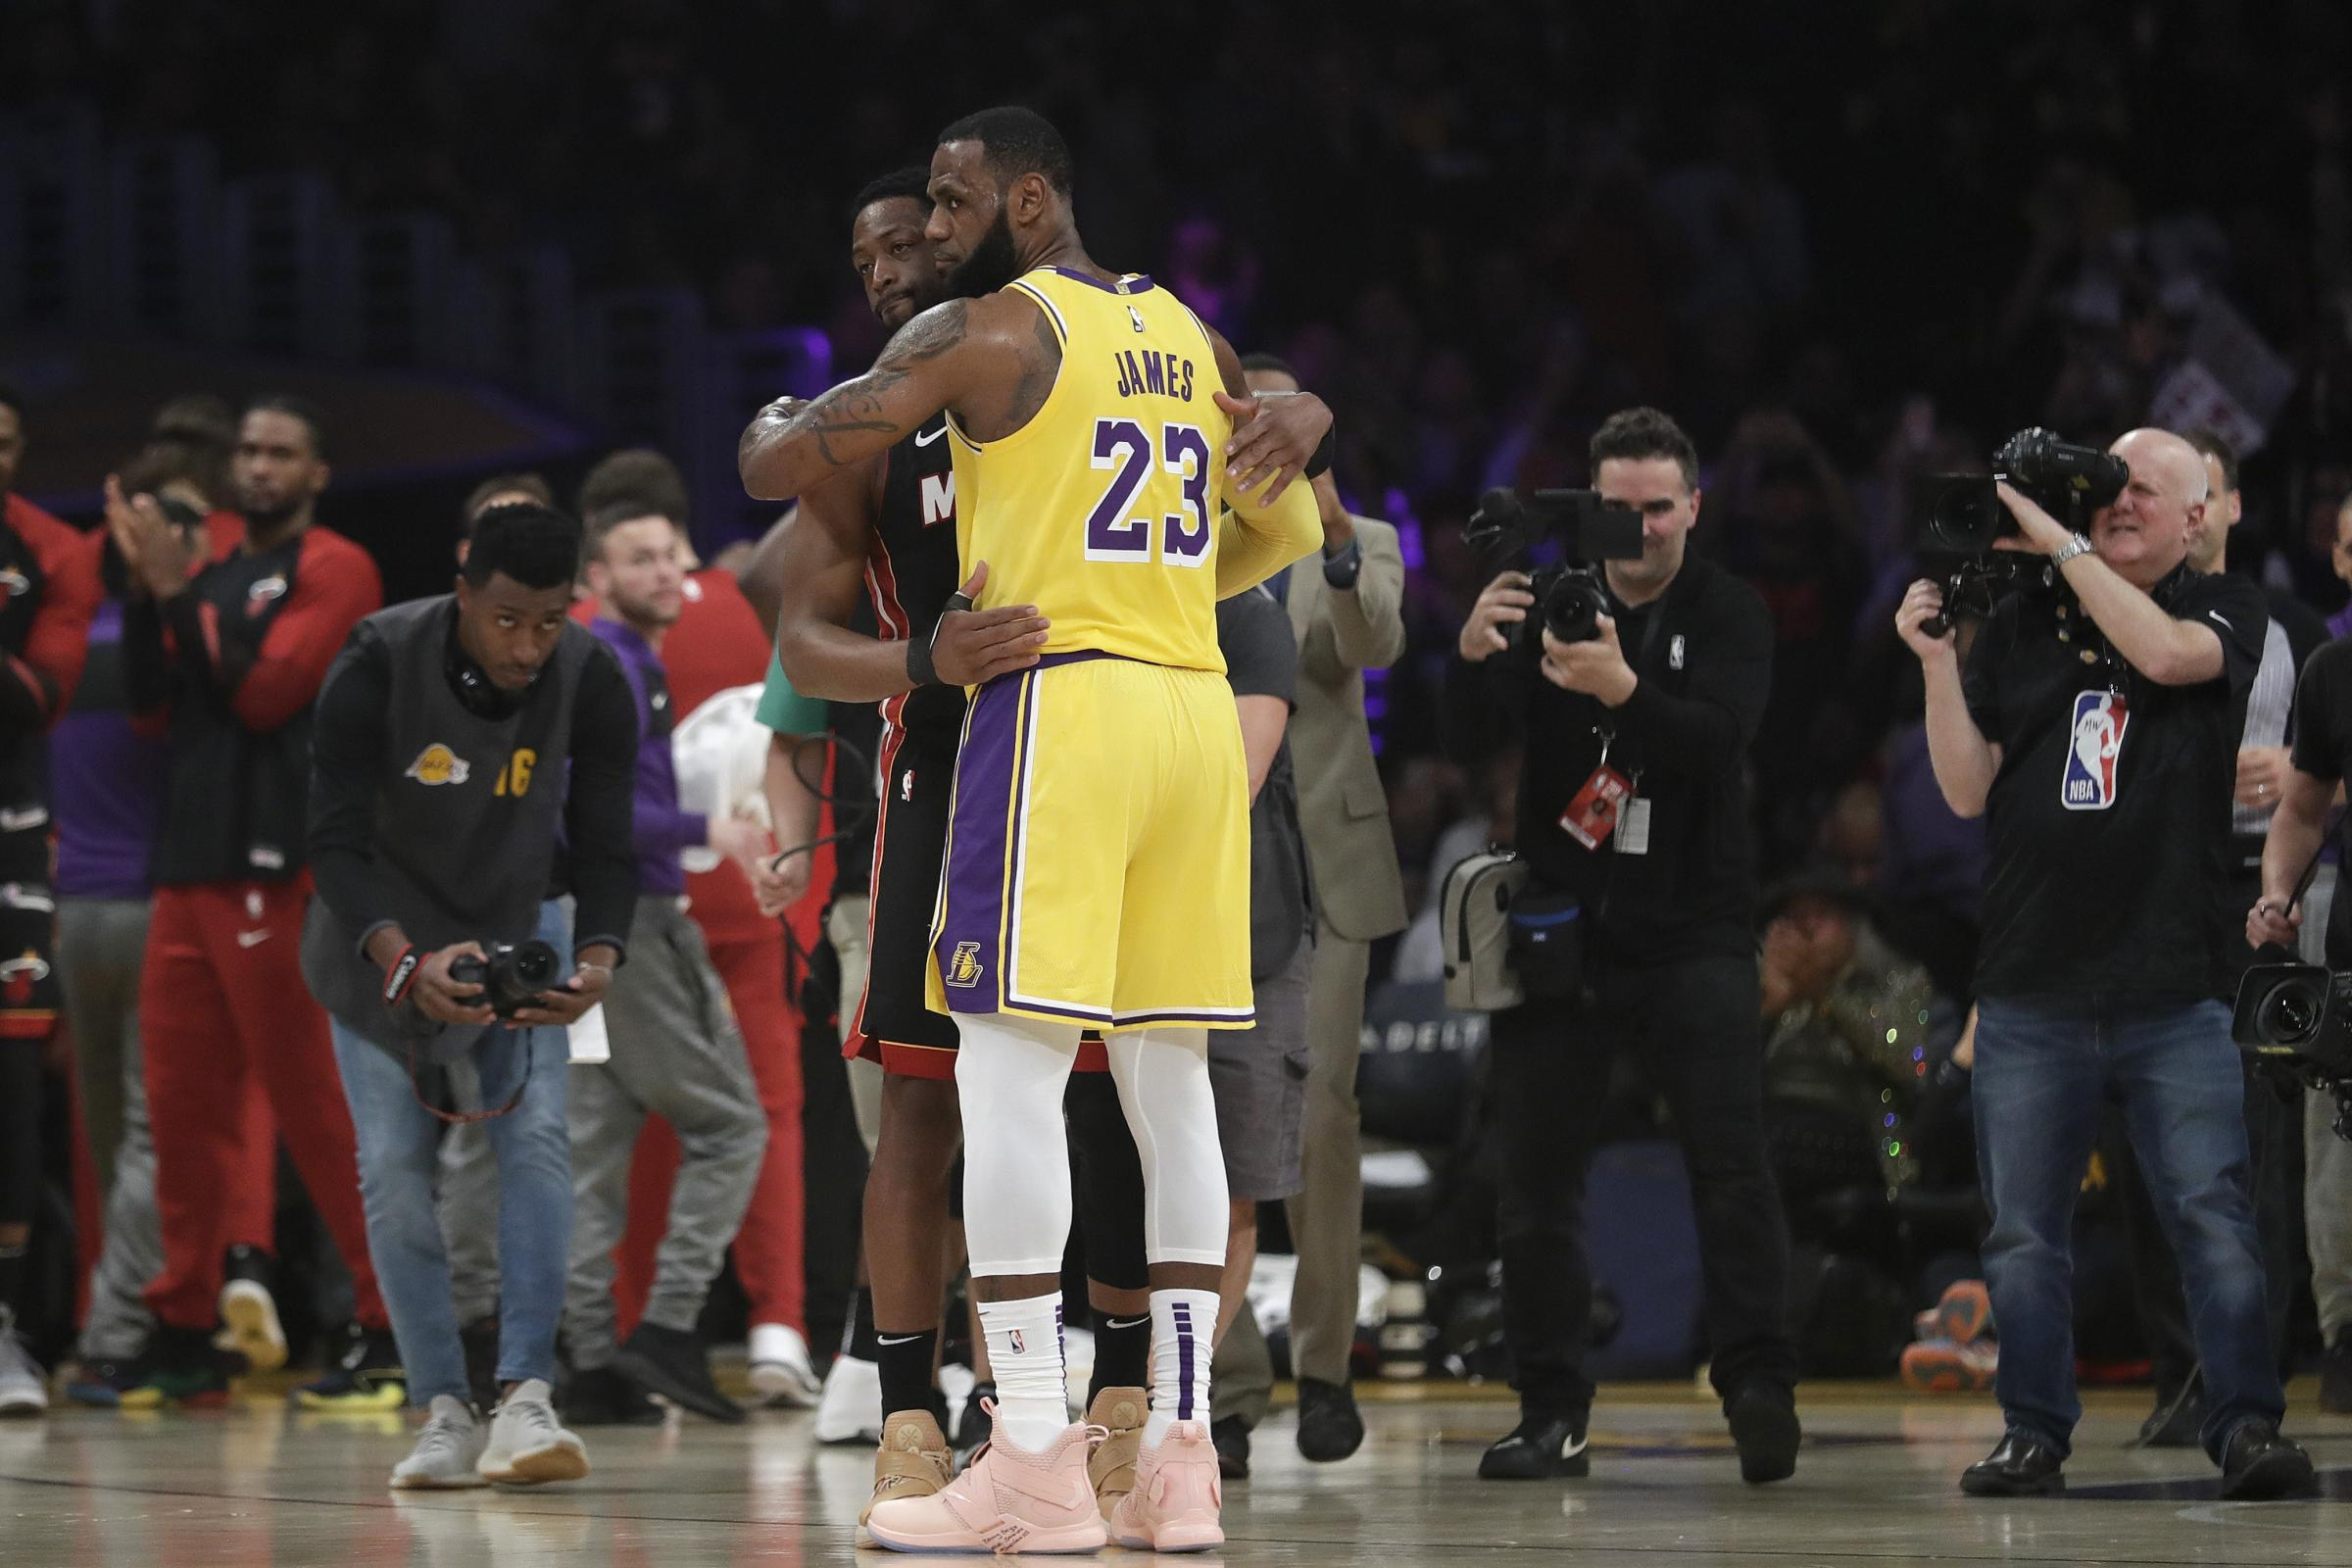 Los Angeles Lakers forward LeBron James hugs ex teammate and current Miami Heat player Dwyane Wade